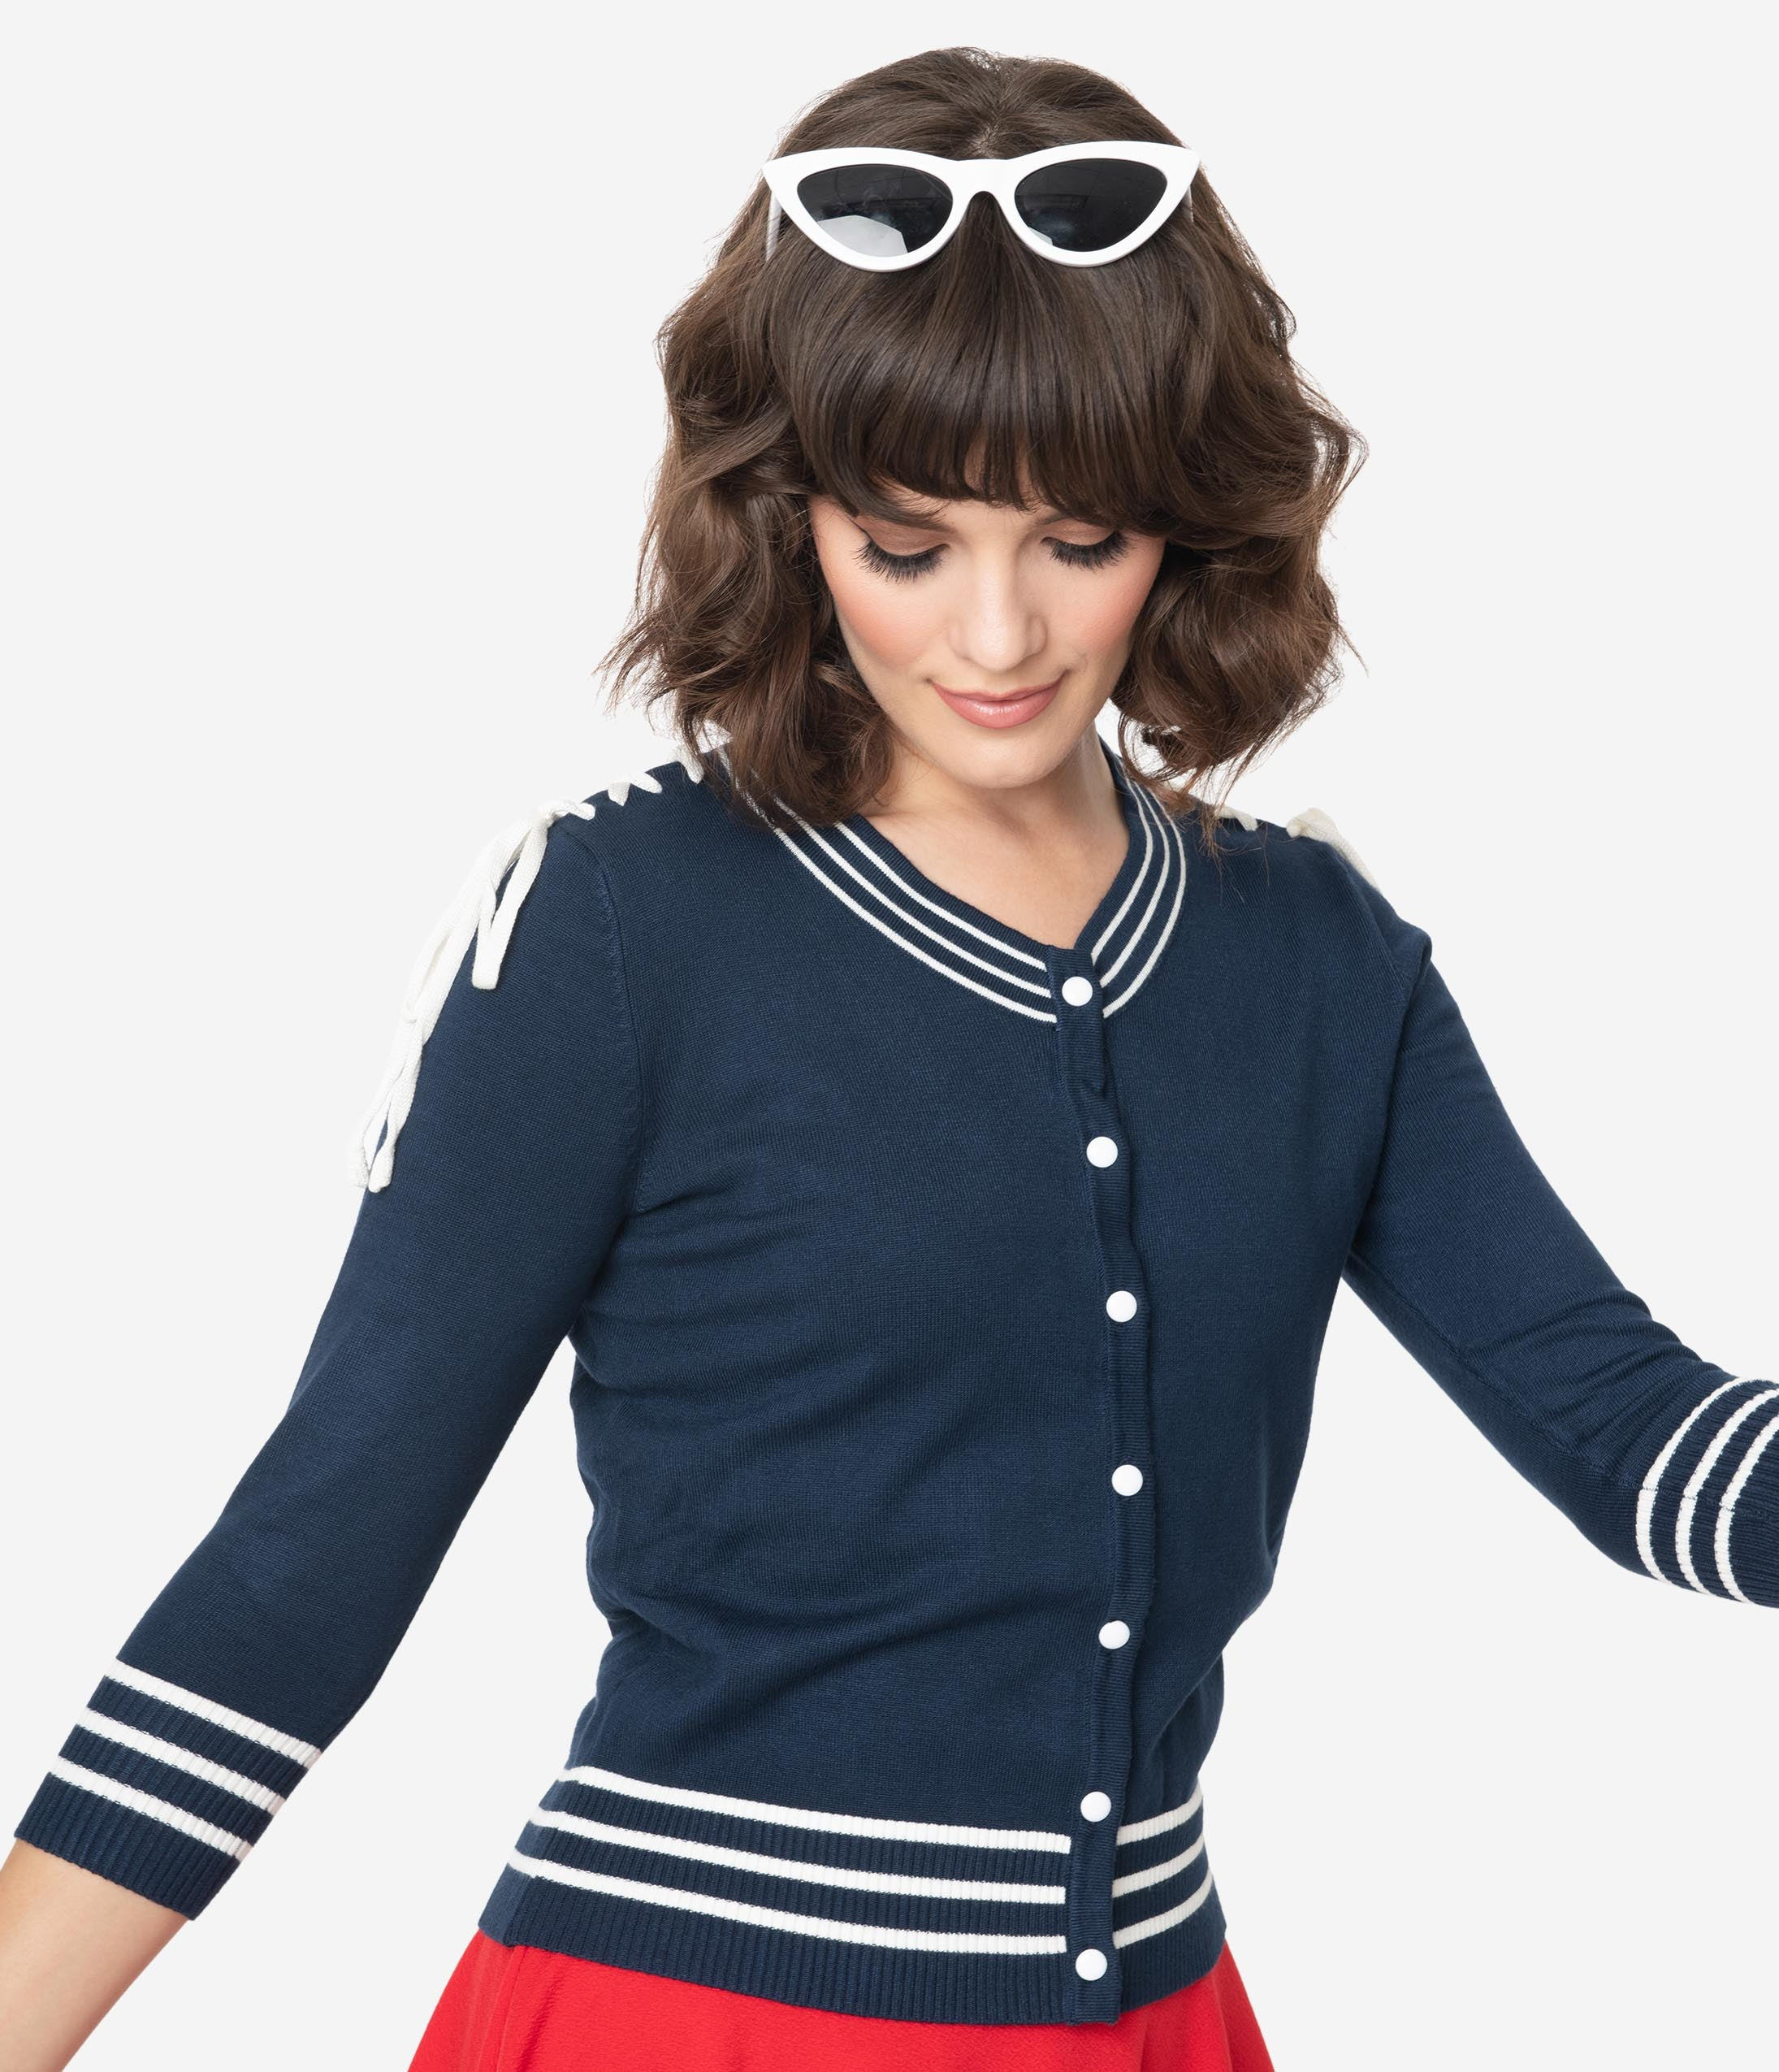 Vintage Sweaters, Retro Sweaters & Cardigan Ladies Voodoo Vixen Navy Nautical Sail Away Anchor Cardigan $52.00 AT vintagedancer.com